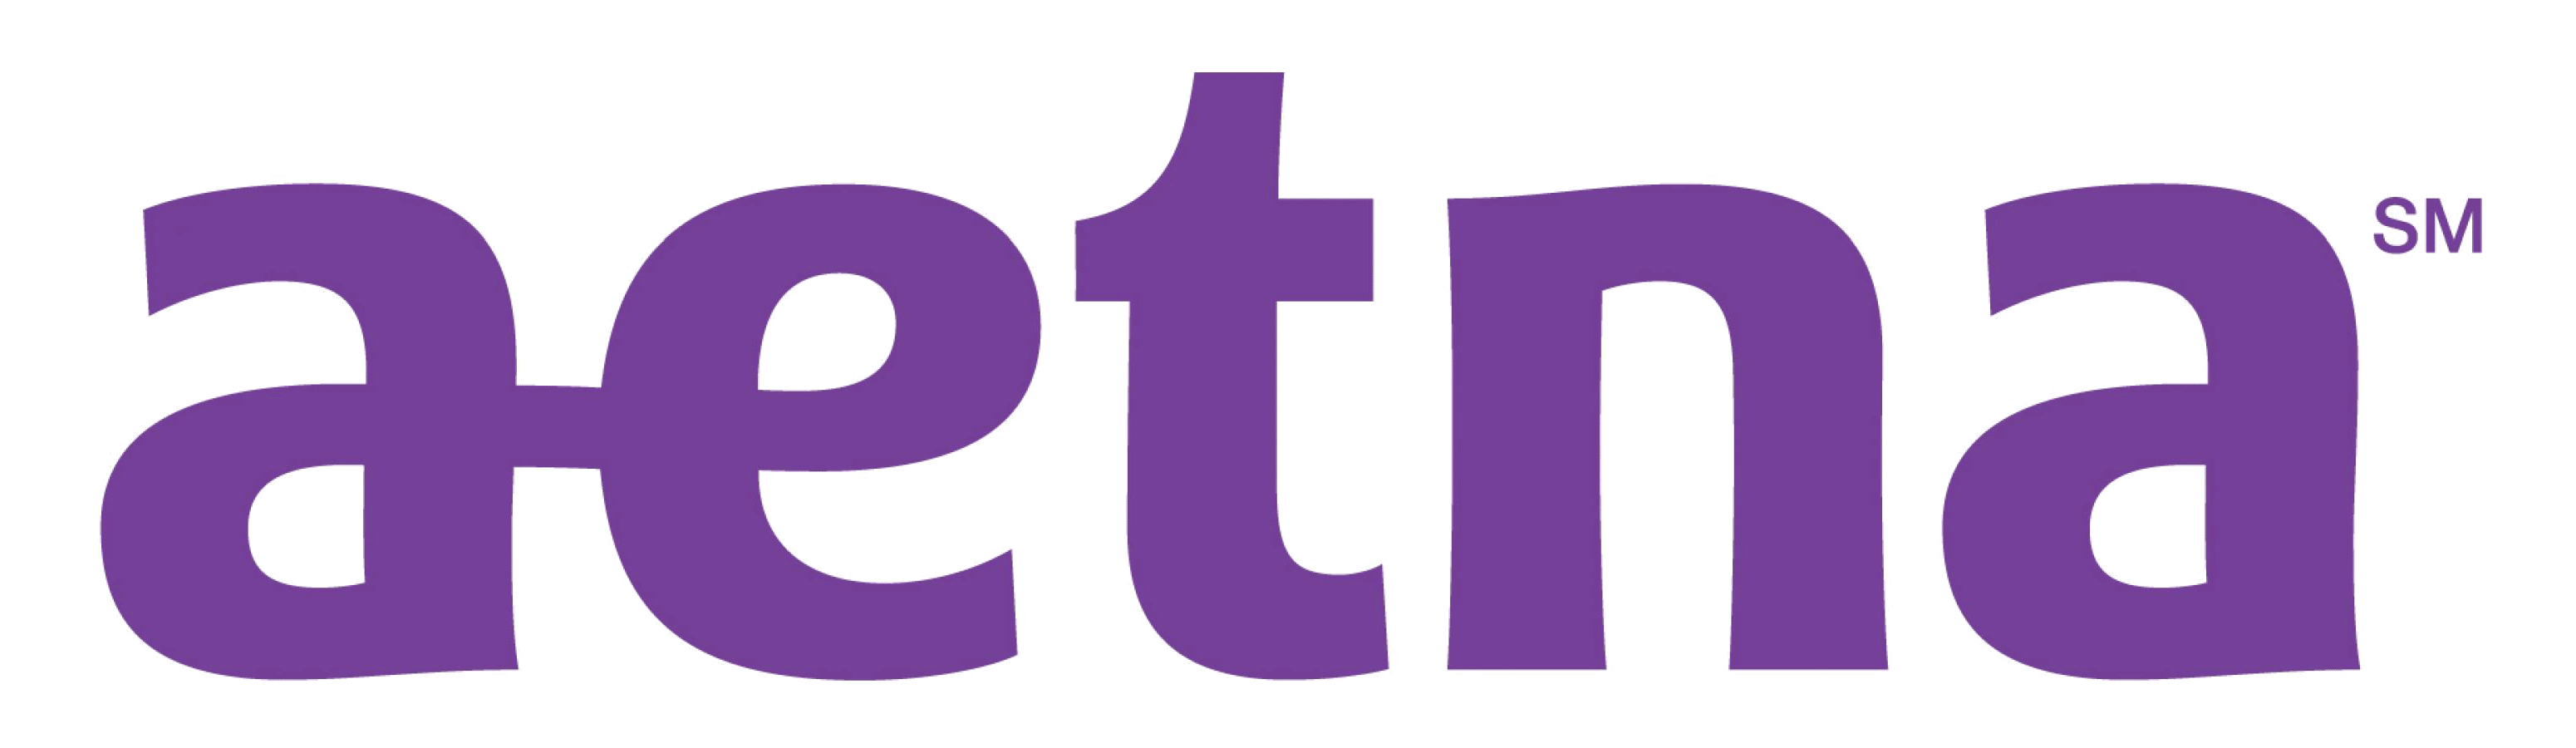 Aetna Review - 2019